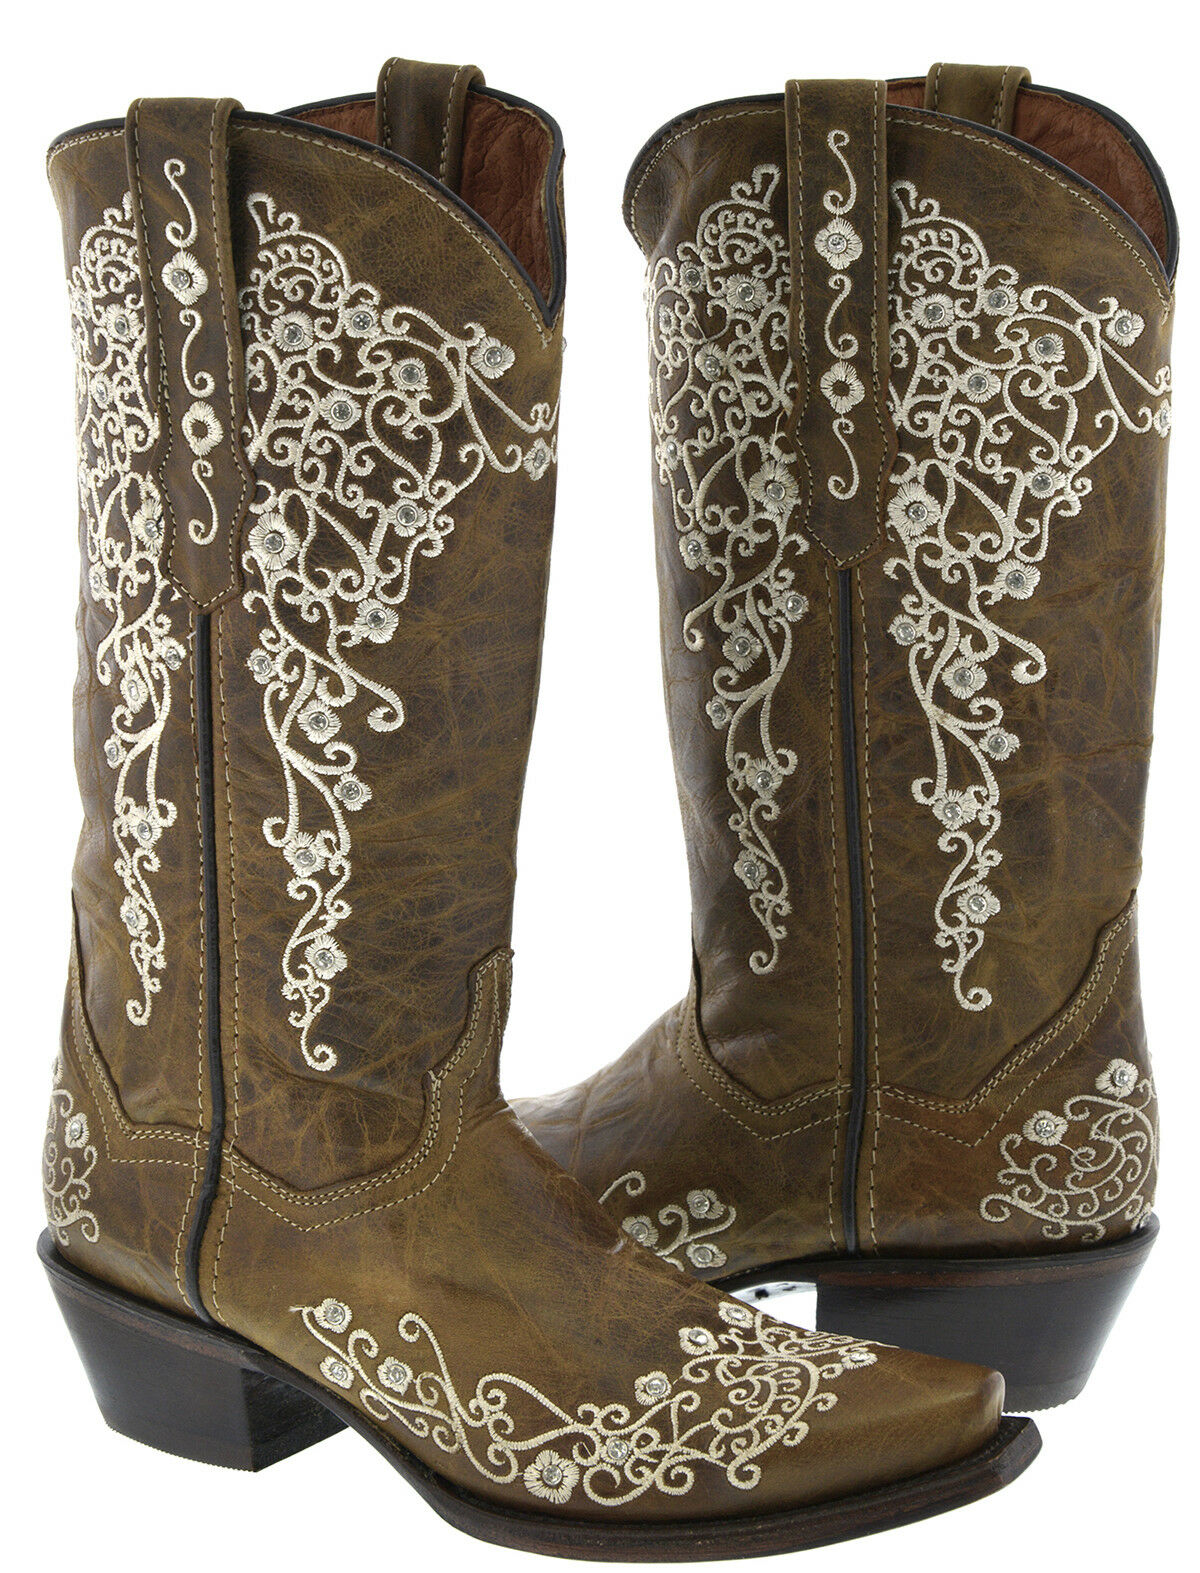 Women's Light Brown Western Leather Cowboy Cowgirl Boots Embroidered Snip Snip Snip Toe f67227